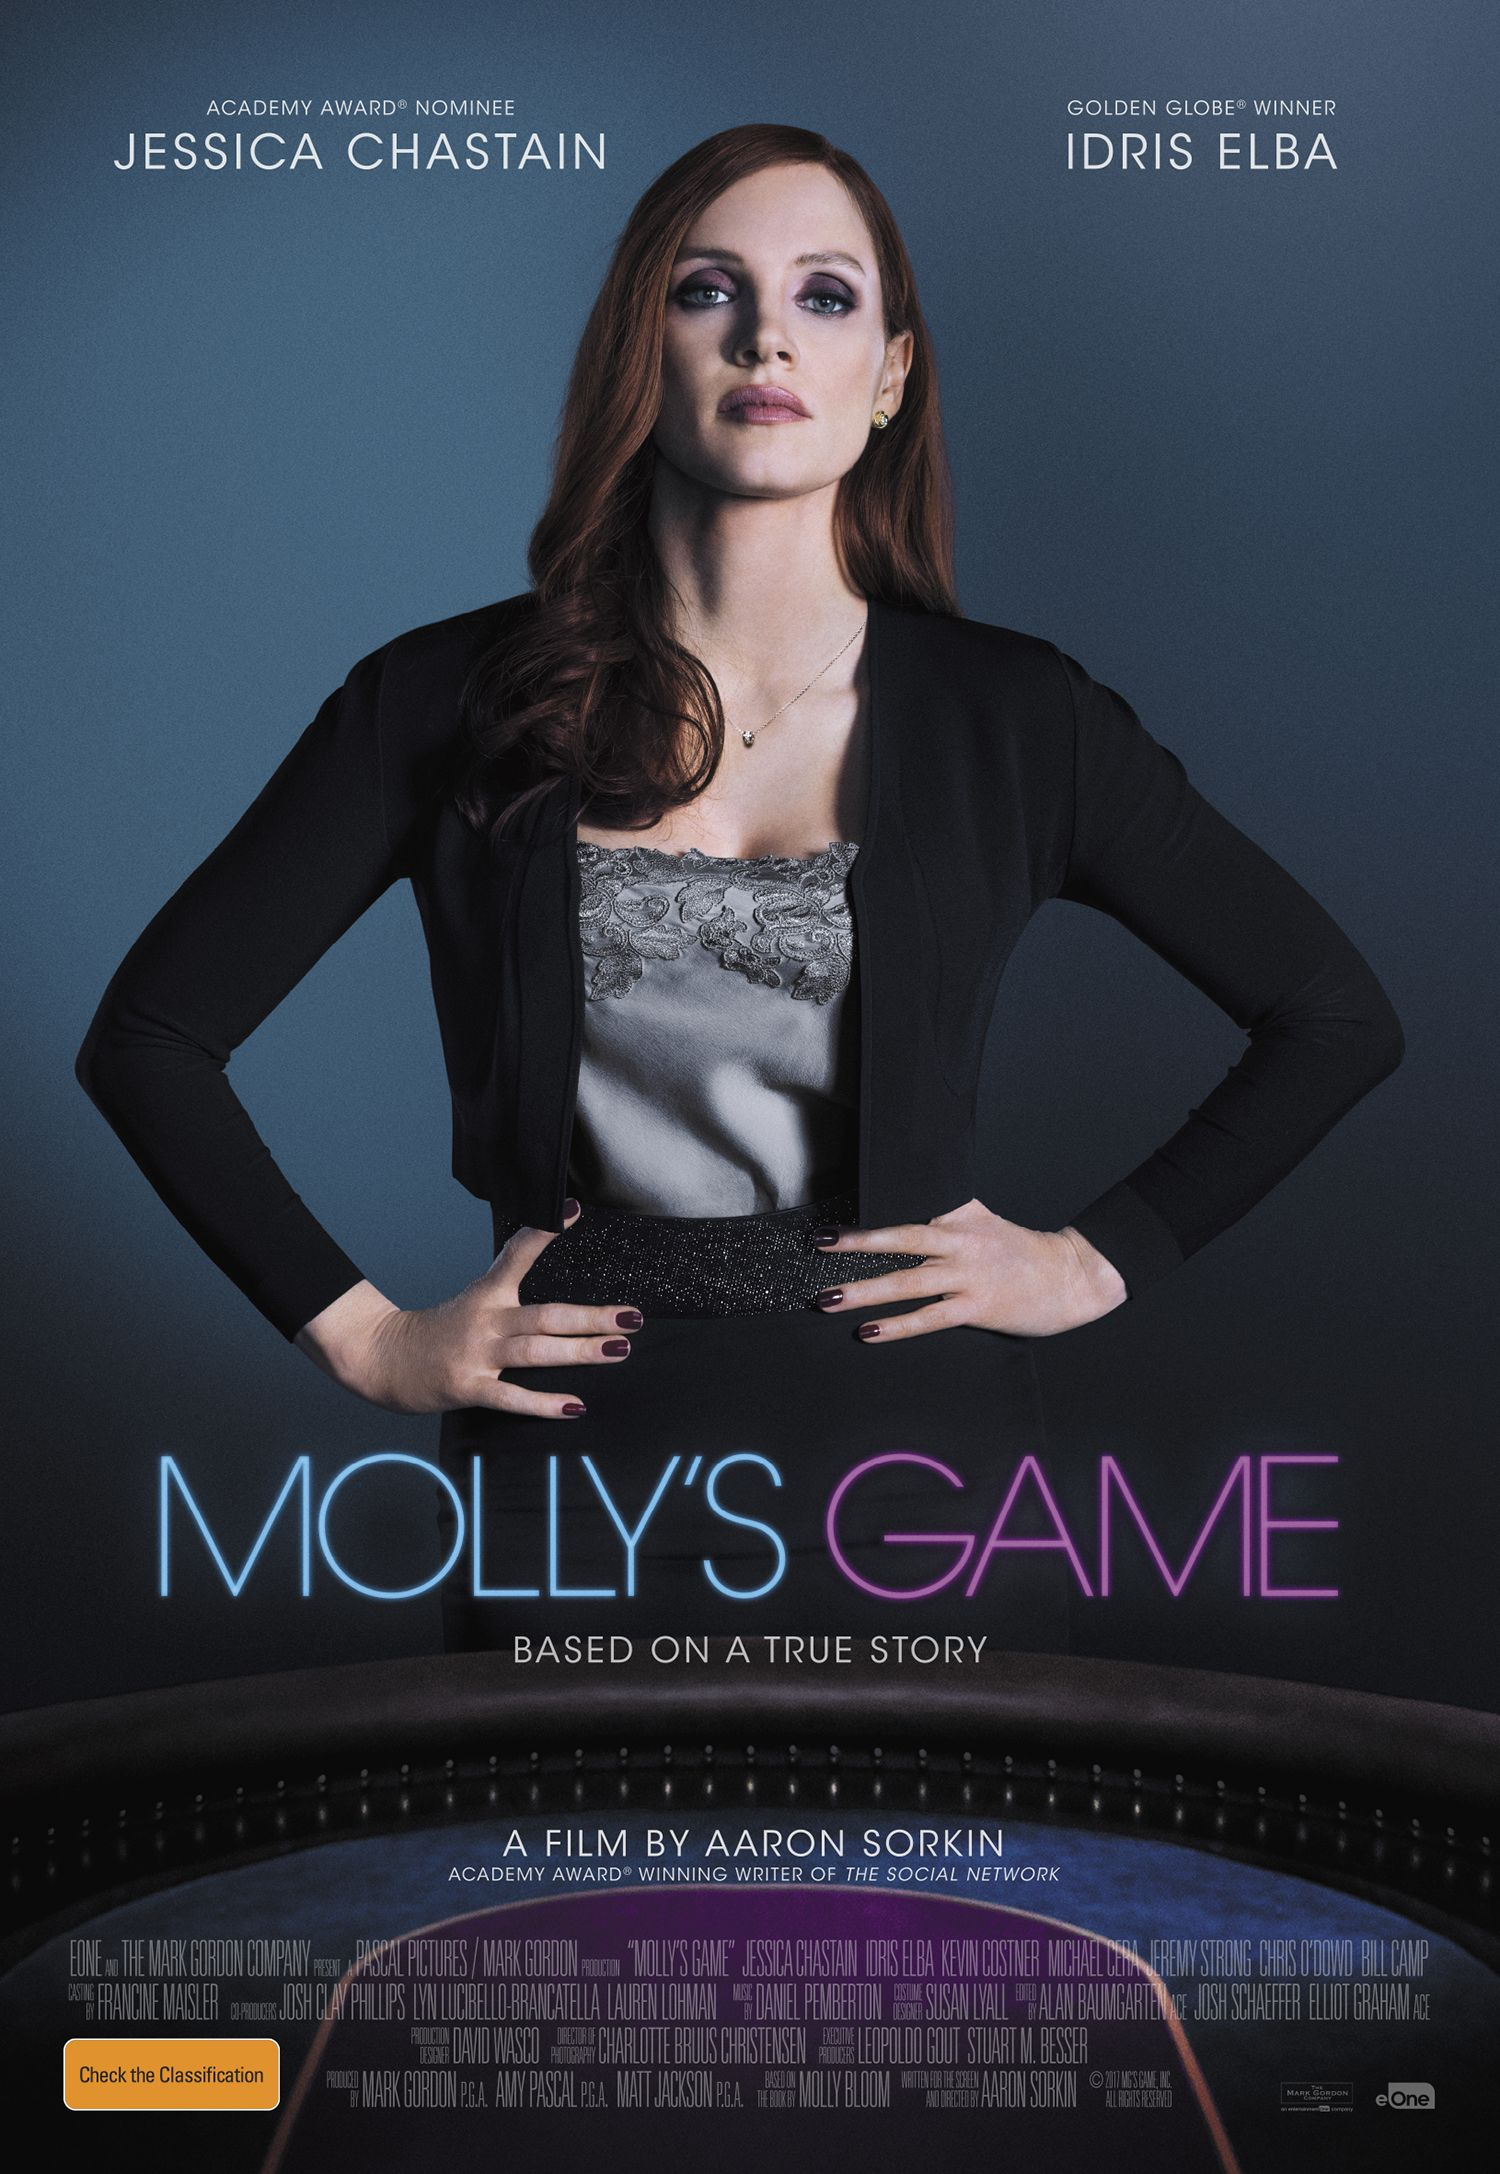 MOLLY'S GAME is the best of Jessica Chastain and adds Idris Elba, Kevin  Coster, Michael Cera and is written and directed by dialogue master Aaron  Sorkin ...